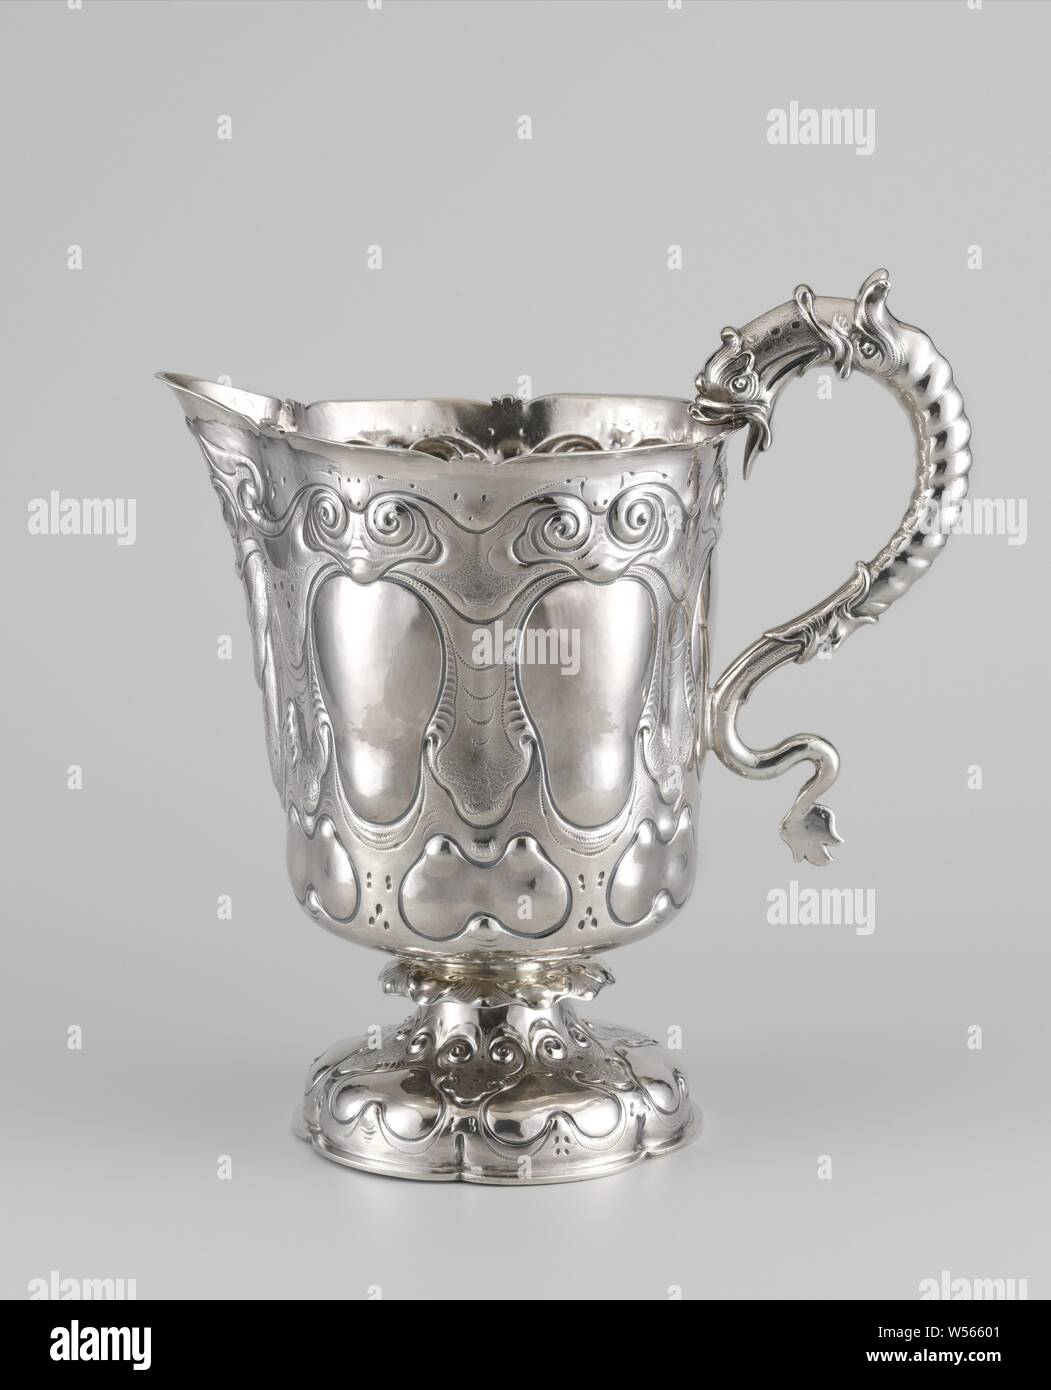 Basin and Ewer, Ewer and Basin, Silver jug, Silver jug. The wide jug has a lobed foot and an ear in the shape of a dragon, auricular ornament, lobe style, ornament, dragon (large fabulous serpent, sometimes with wings and legs), Andries Grill, The Hague, 1649, silver (metal), h 27.0 cm × w 25.0 cm × d 16.0 cm × w 1121 Stock Photo